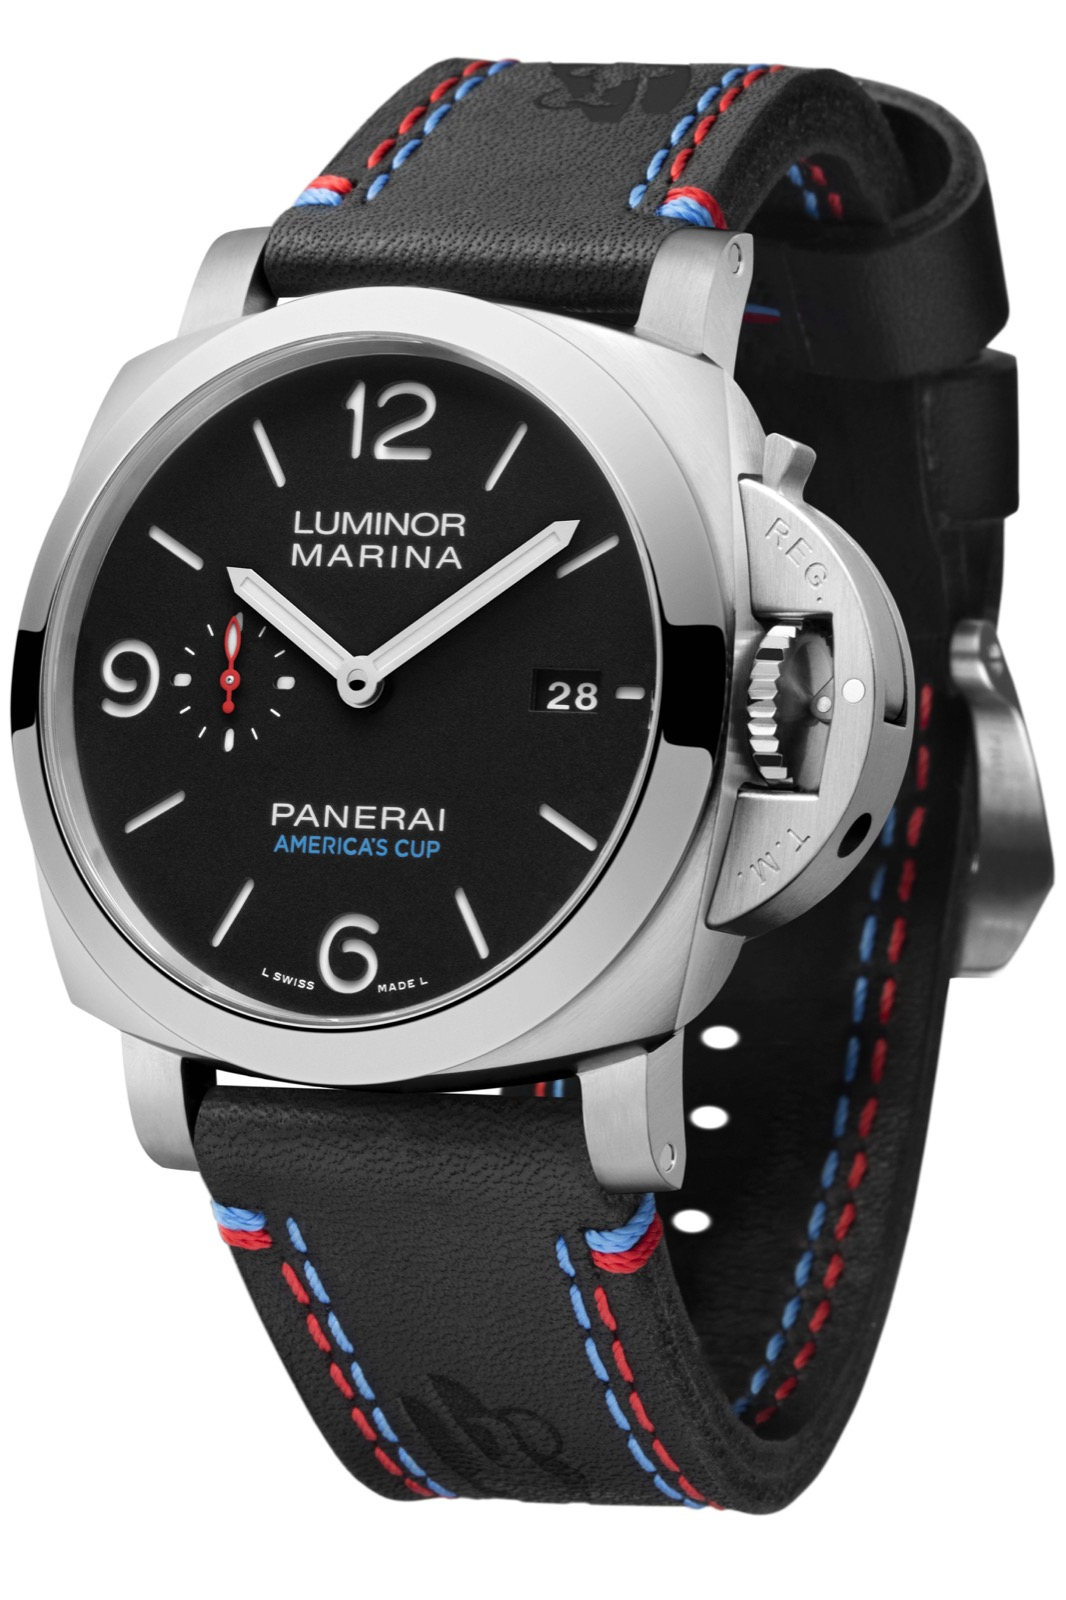 PANERAI LUMINOR MARINA 1950 AMERICA'S CUP 3 DAYS AUTOMATIC ACCIAIO (PAM727) – 44mm